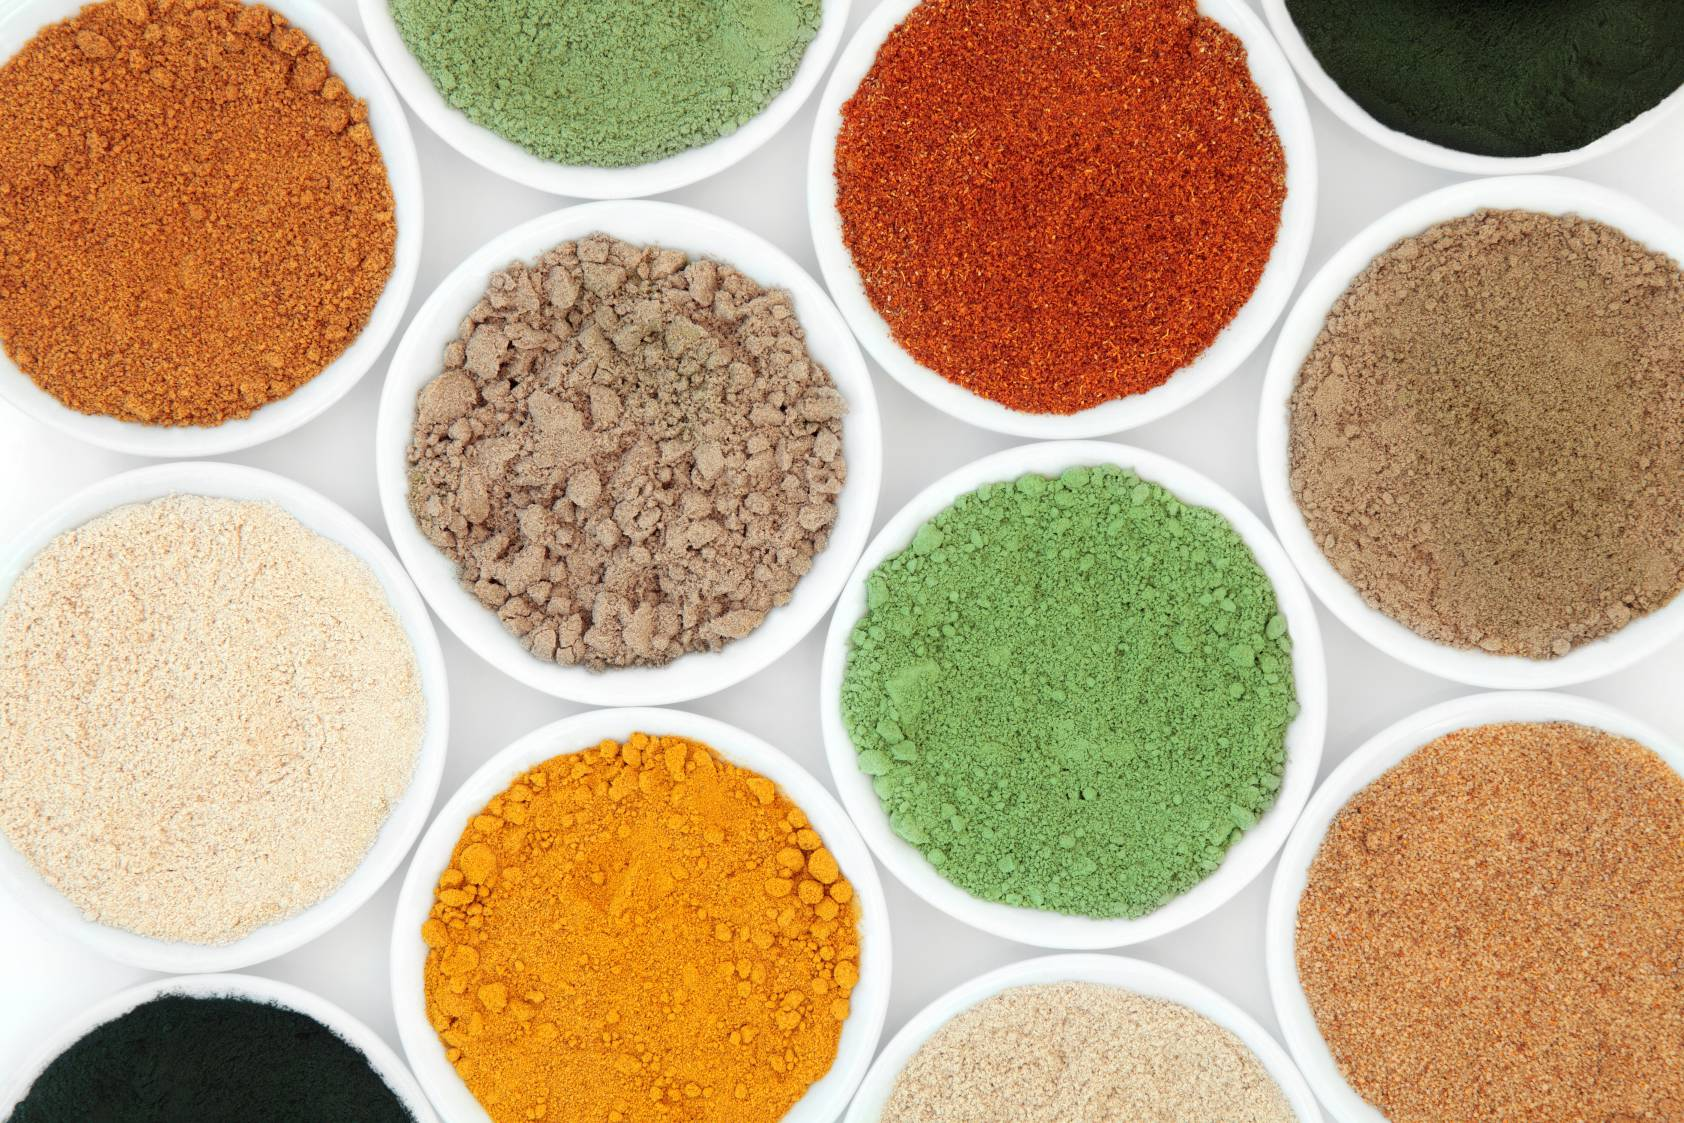 top down view of powdered foods